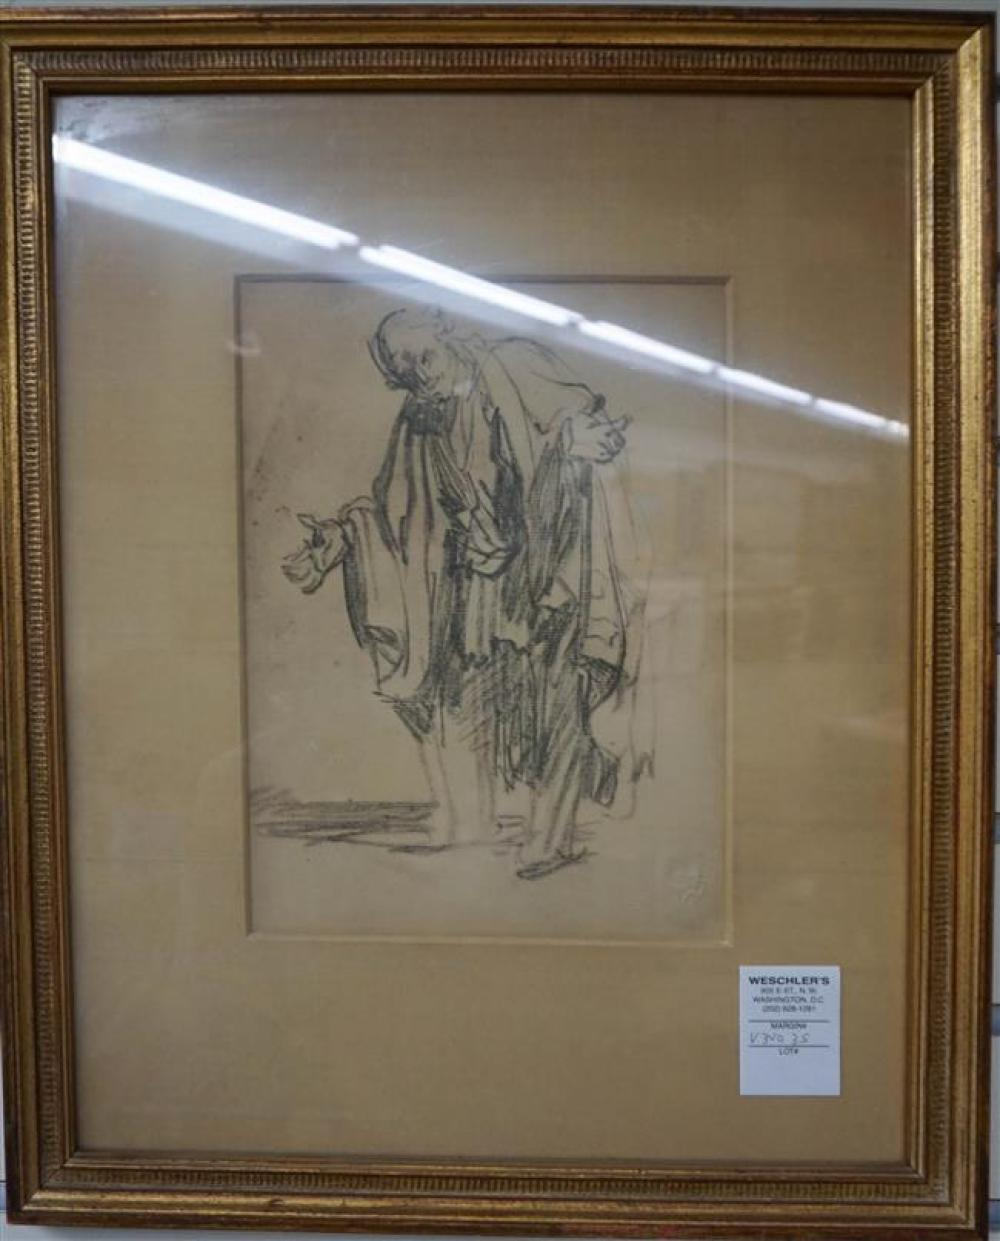 After Rembrandt, Old Man, Print with Blind Seal, Frame: 18 x 14-3/4 in